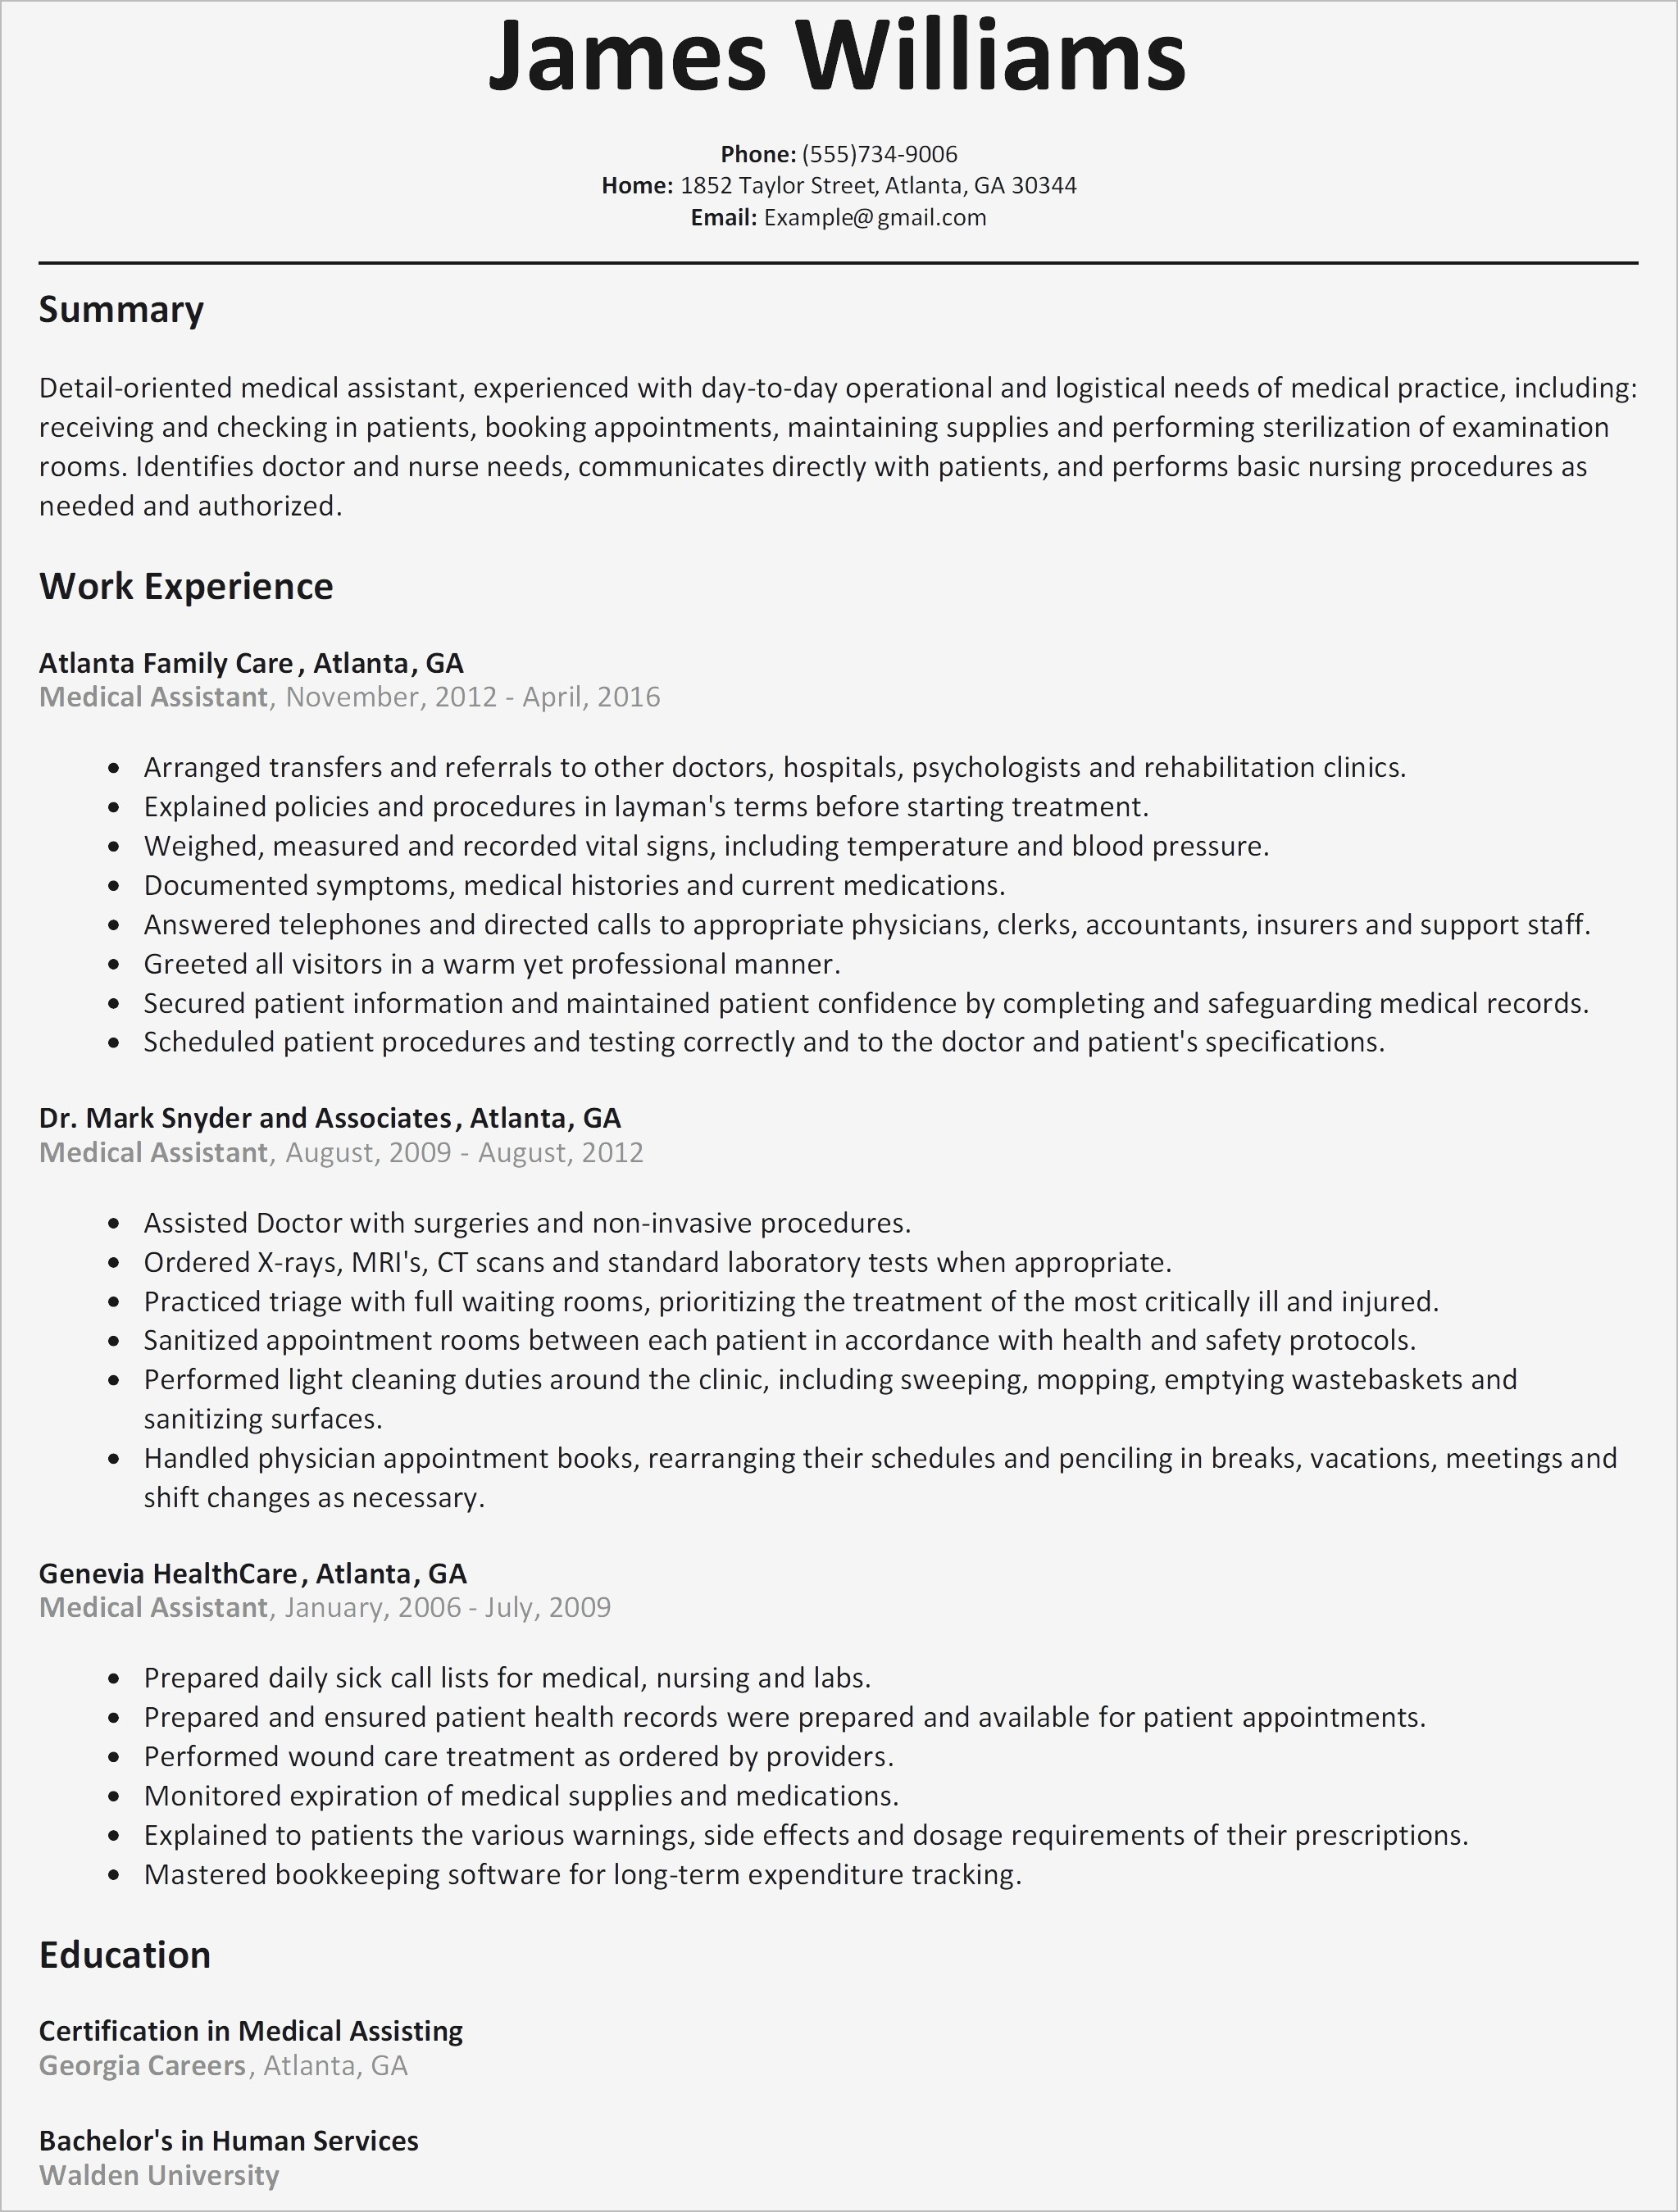 Graphic Designer Resumes - 16 Beautiful Graphic Design Resume Examples